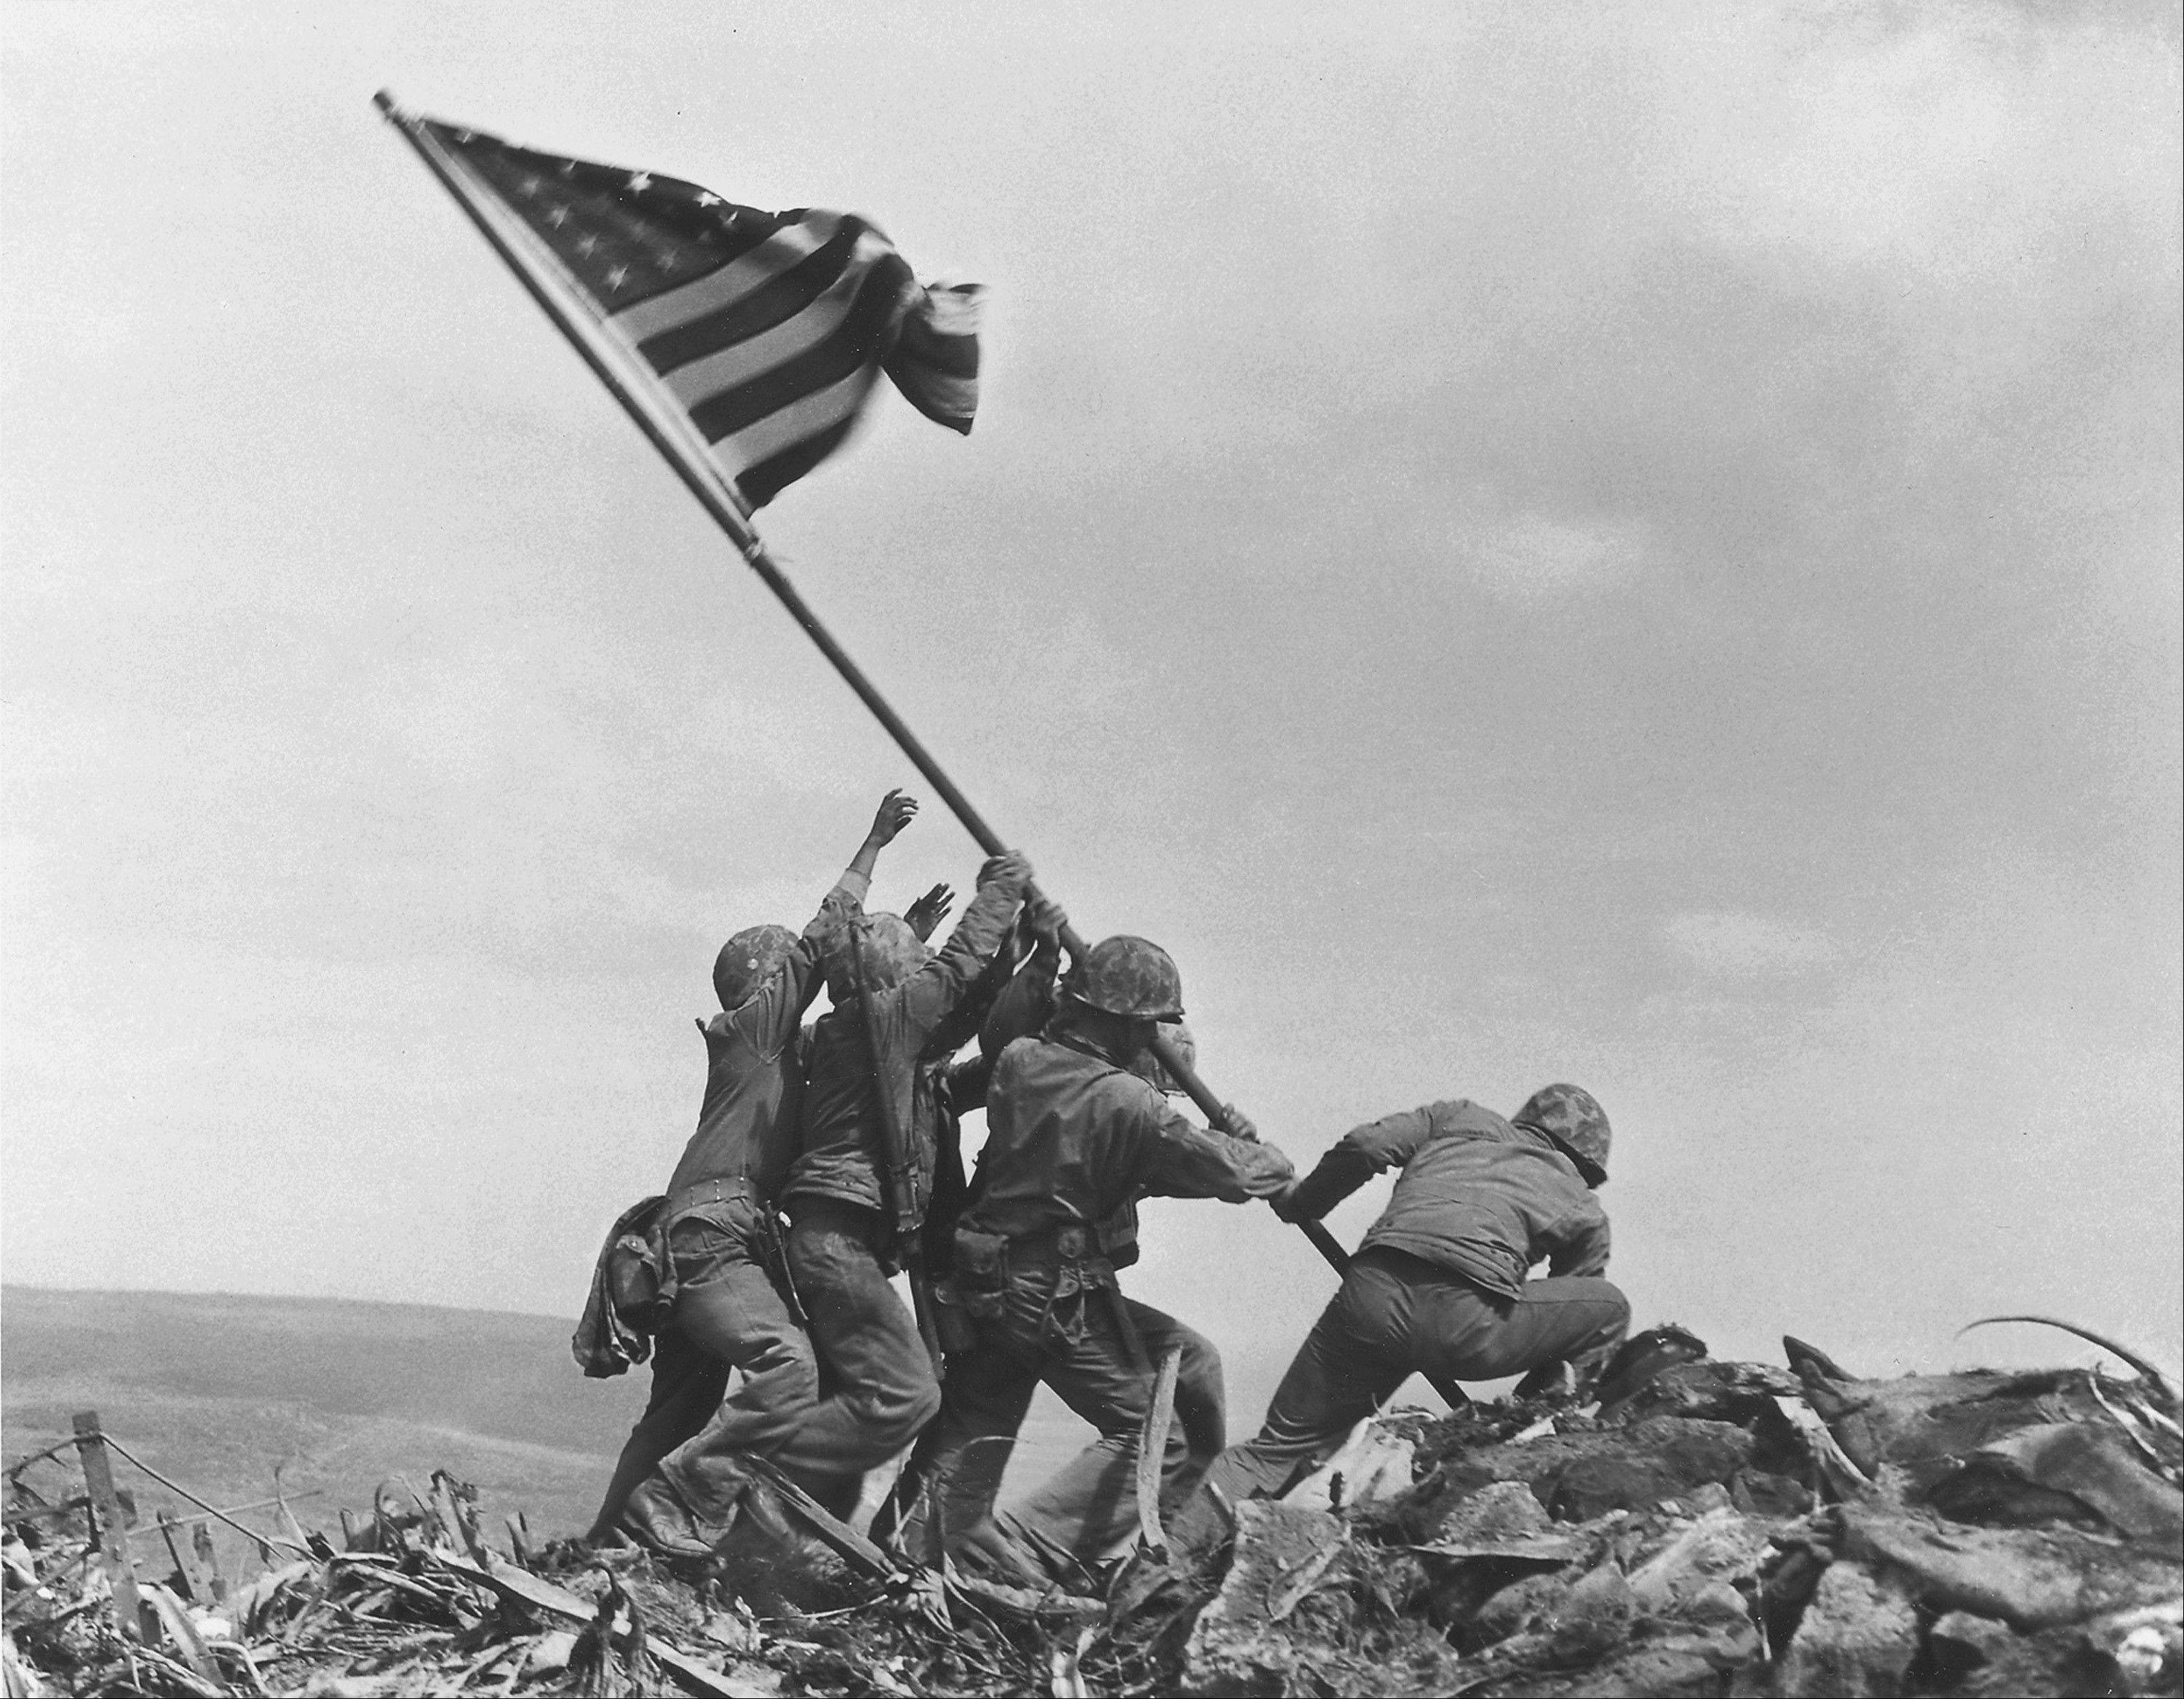 U.S. Marines of the 28th Regiment, 5th Division, raise the American flag atop Mt. Suribachi, Iwo Jima, on Feb. 23, 1945 during World War II.